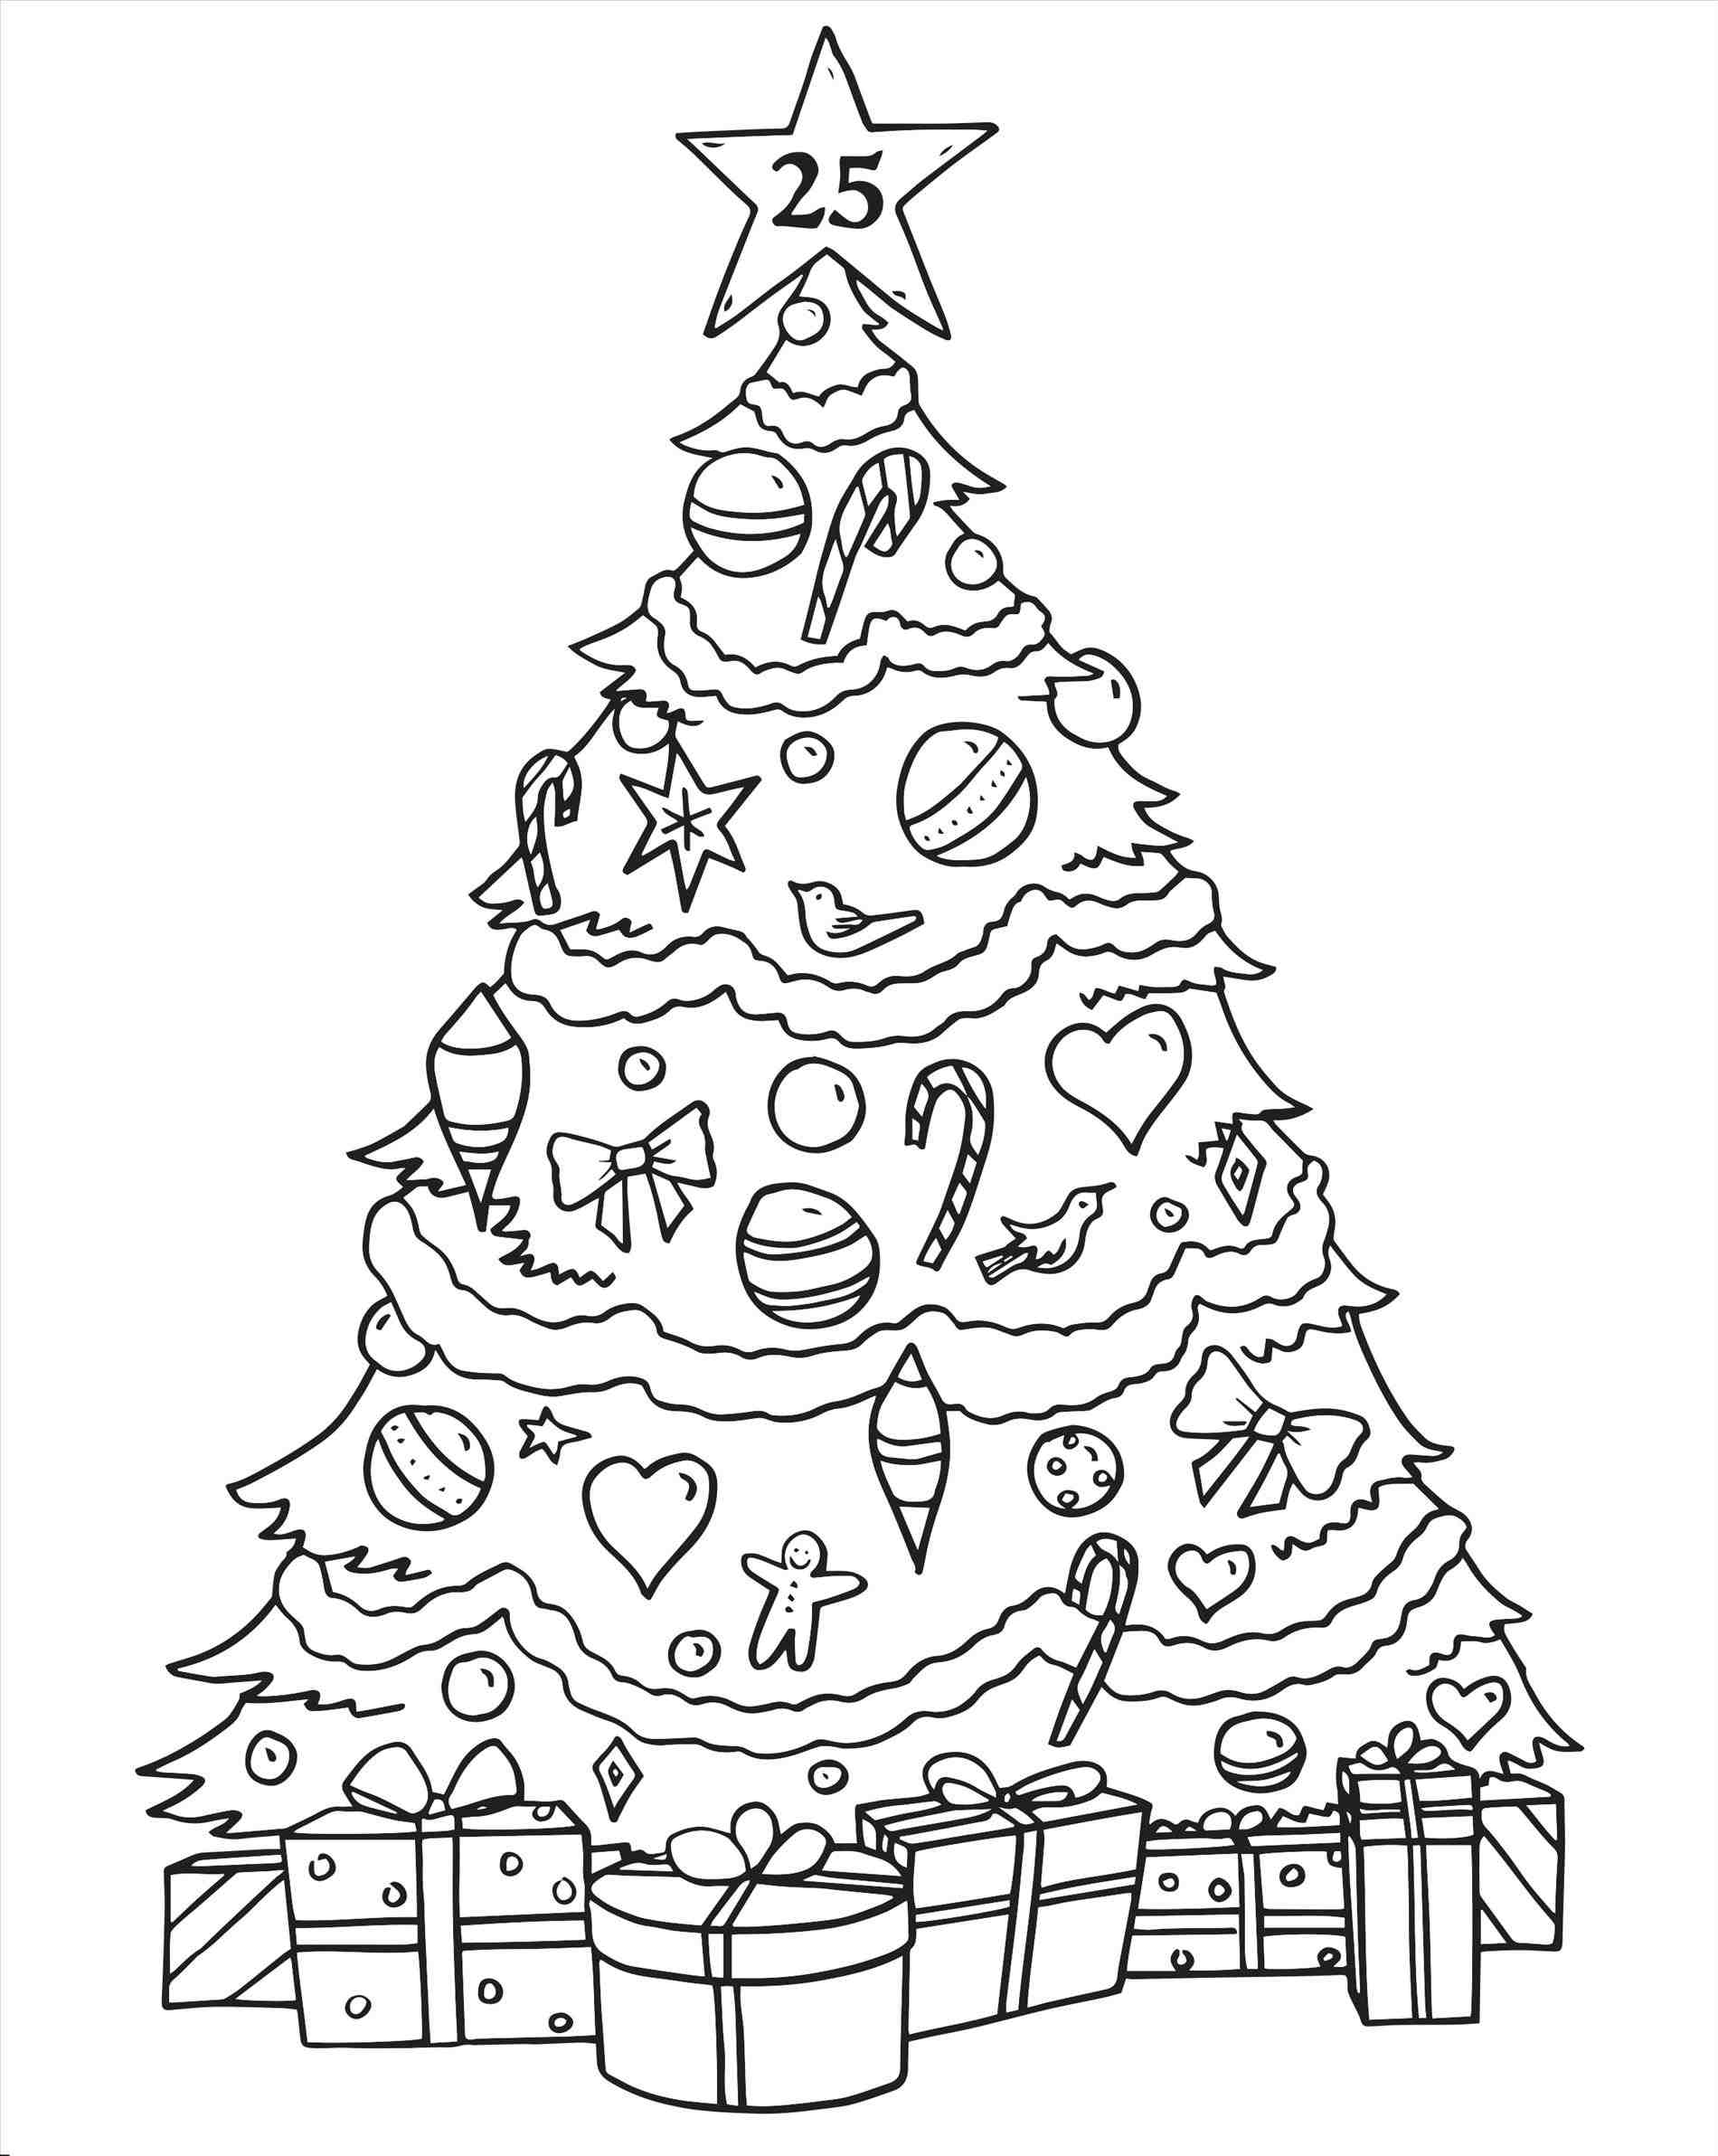 Christmas Tree Drawing For Kids At Getdrawings